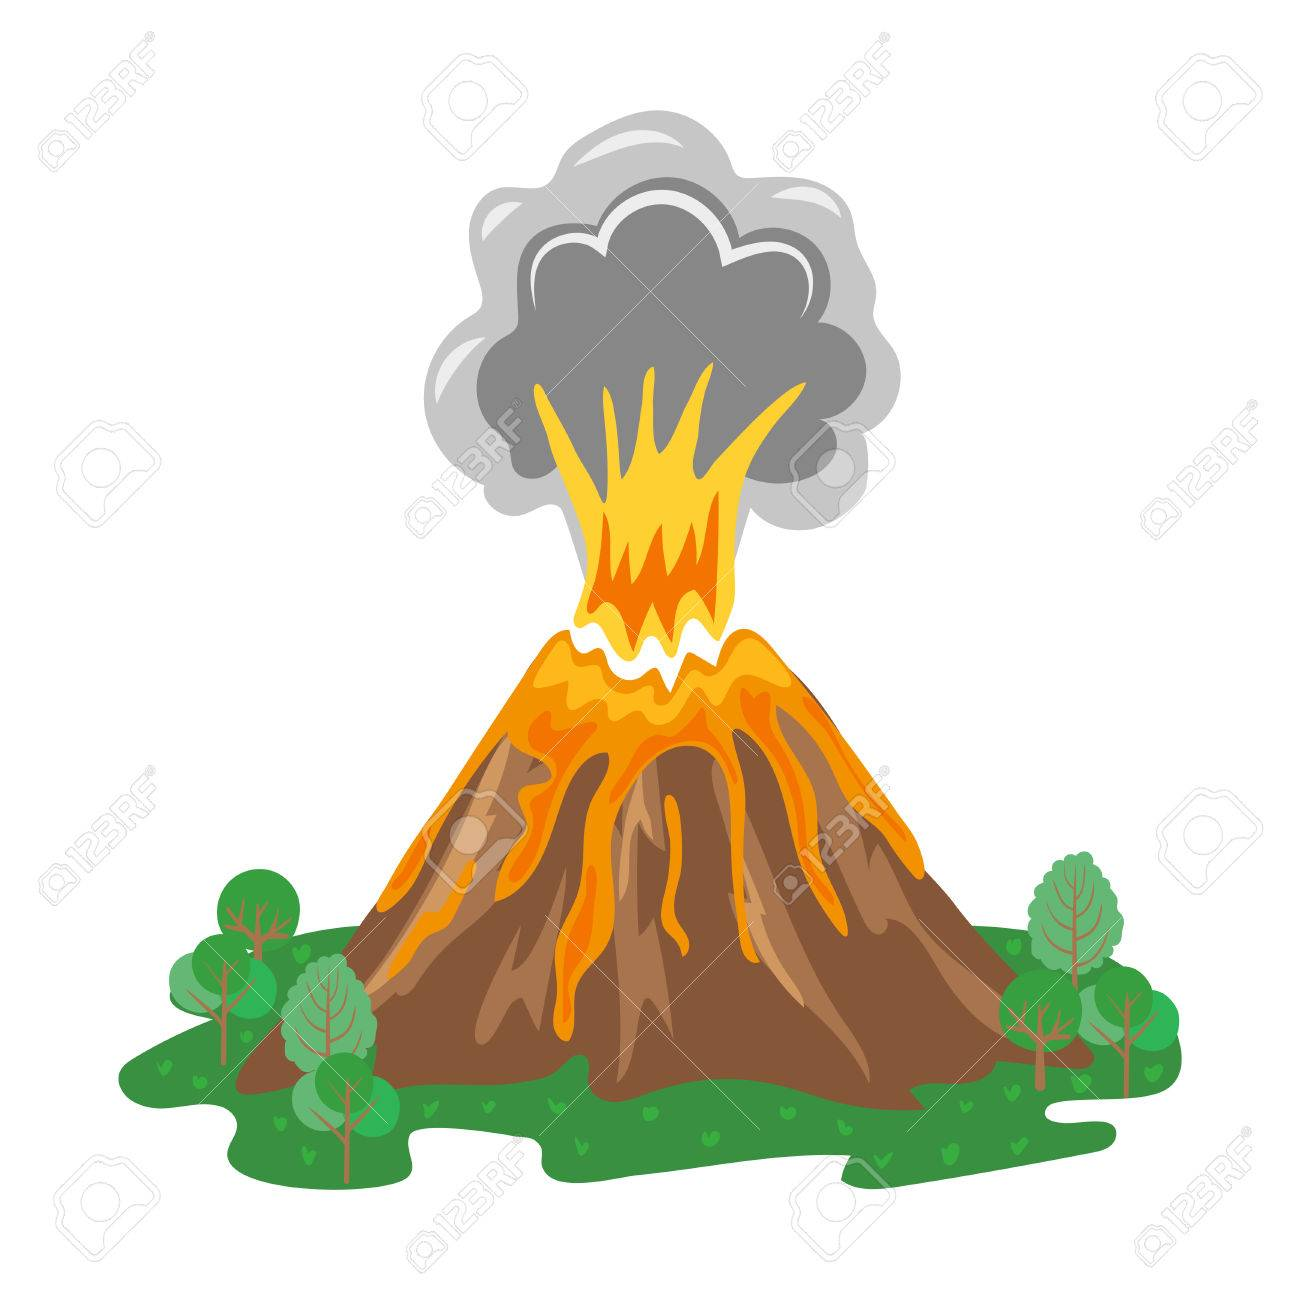 Clipart erupt clipart royalty free download Volcano Clipart Free | Free download best Volcano Clipart Free on ... clipart royalty free download